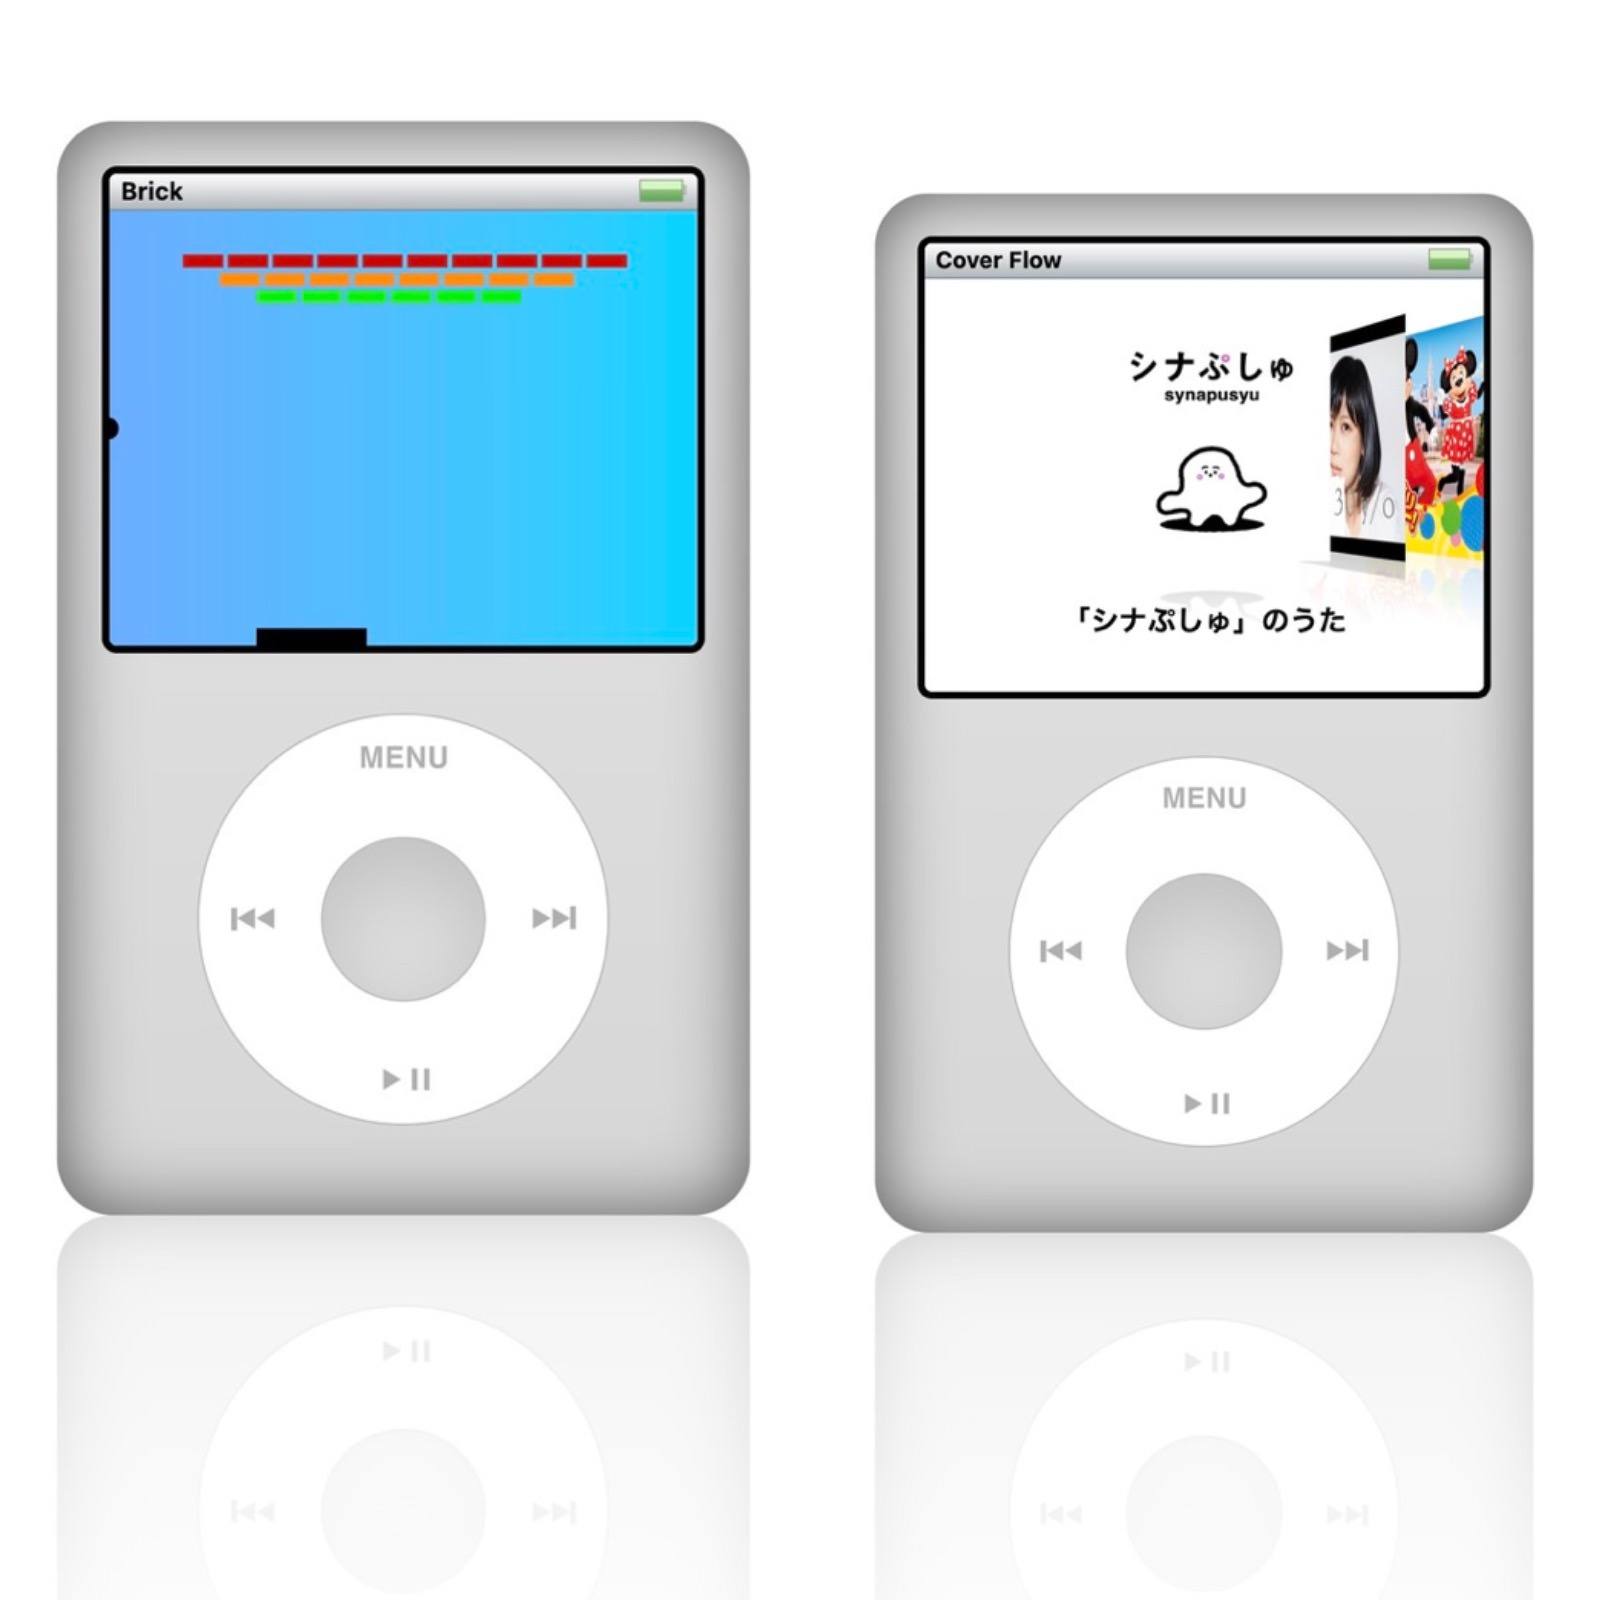 Ipod js ipodclassic like webapp game and coverflow 2